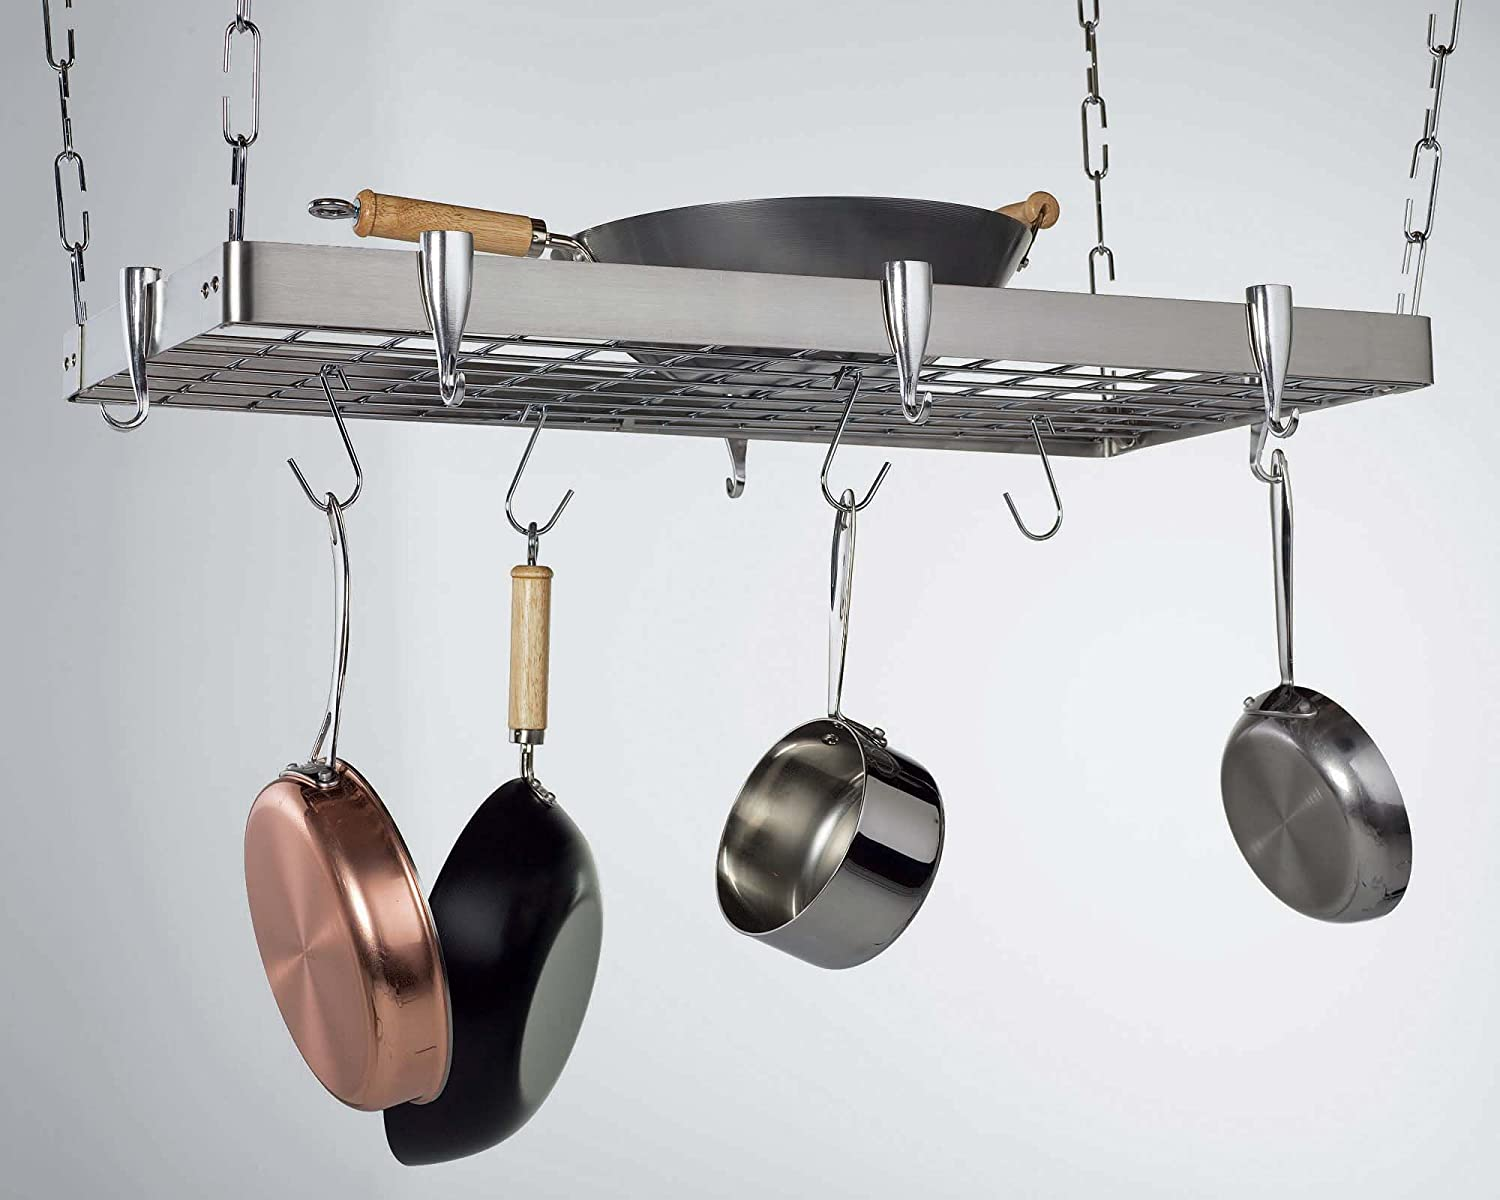 hooks oval dutch grid satin x dining with hanging amazon com racks pot rack kitchen nickel old dp